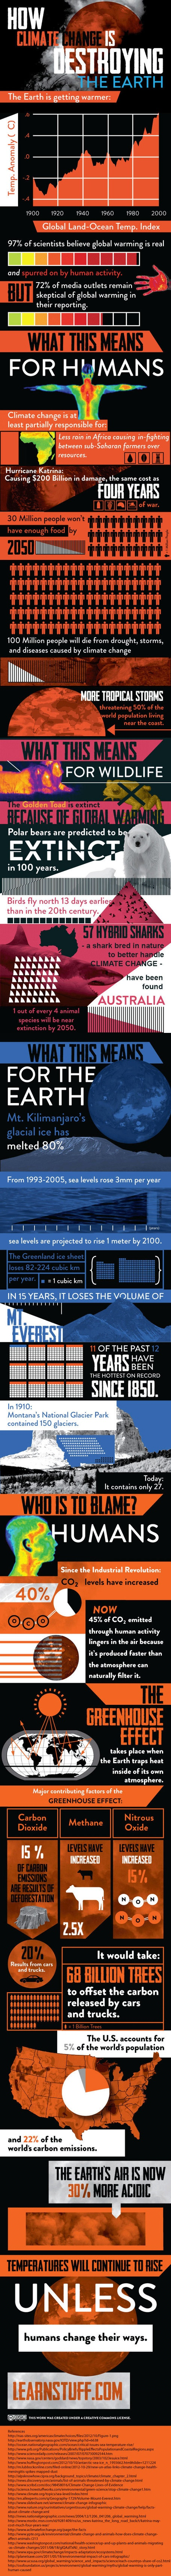 Climate Change Infographic | Geography Education | Scoop.it